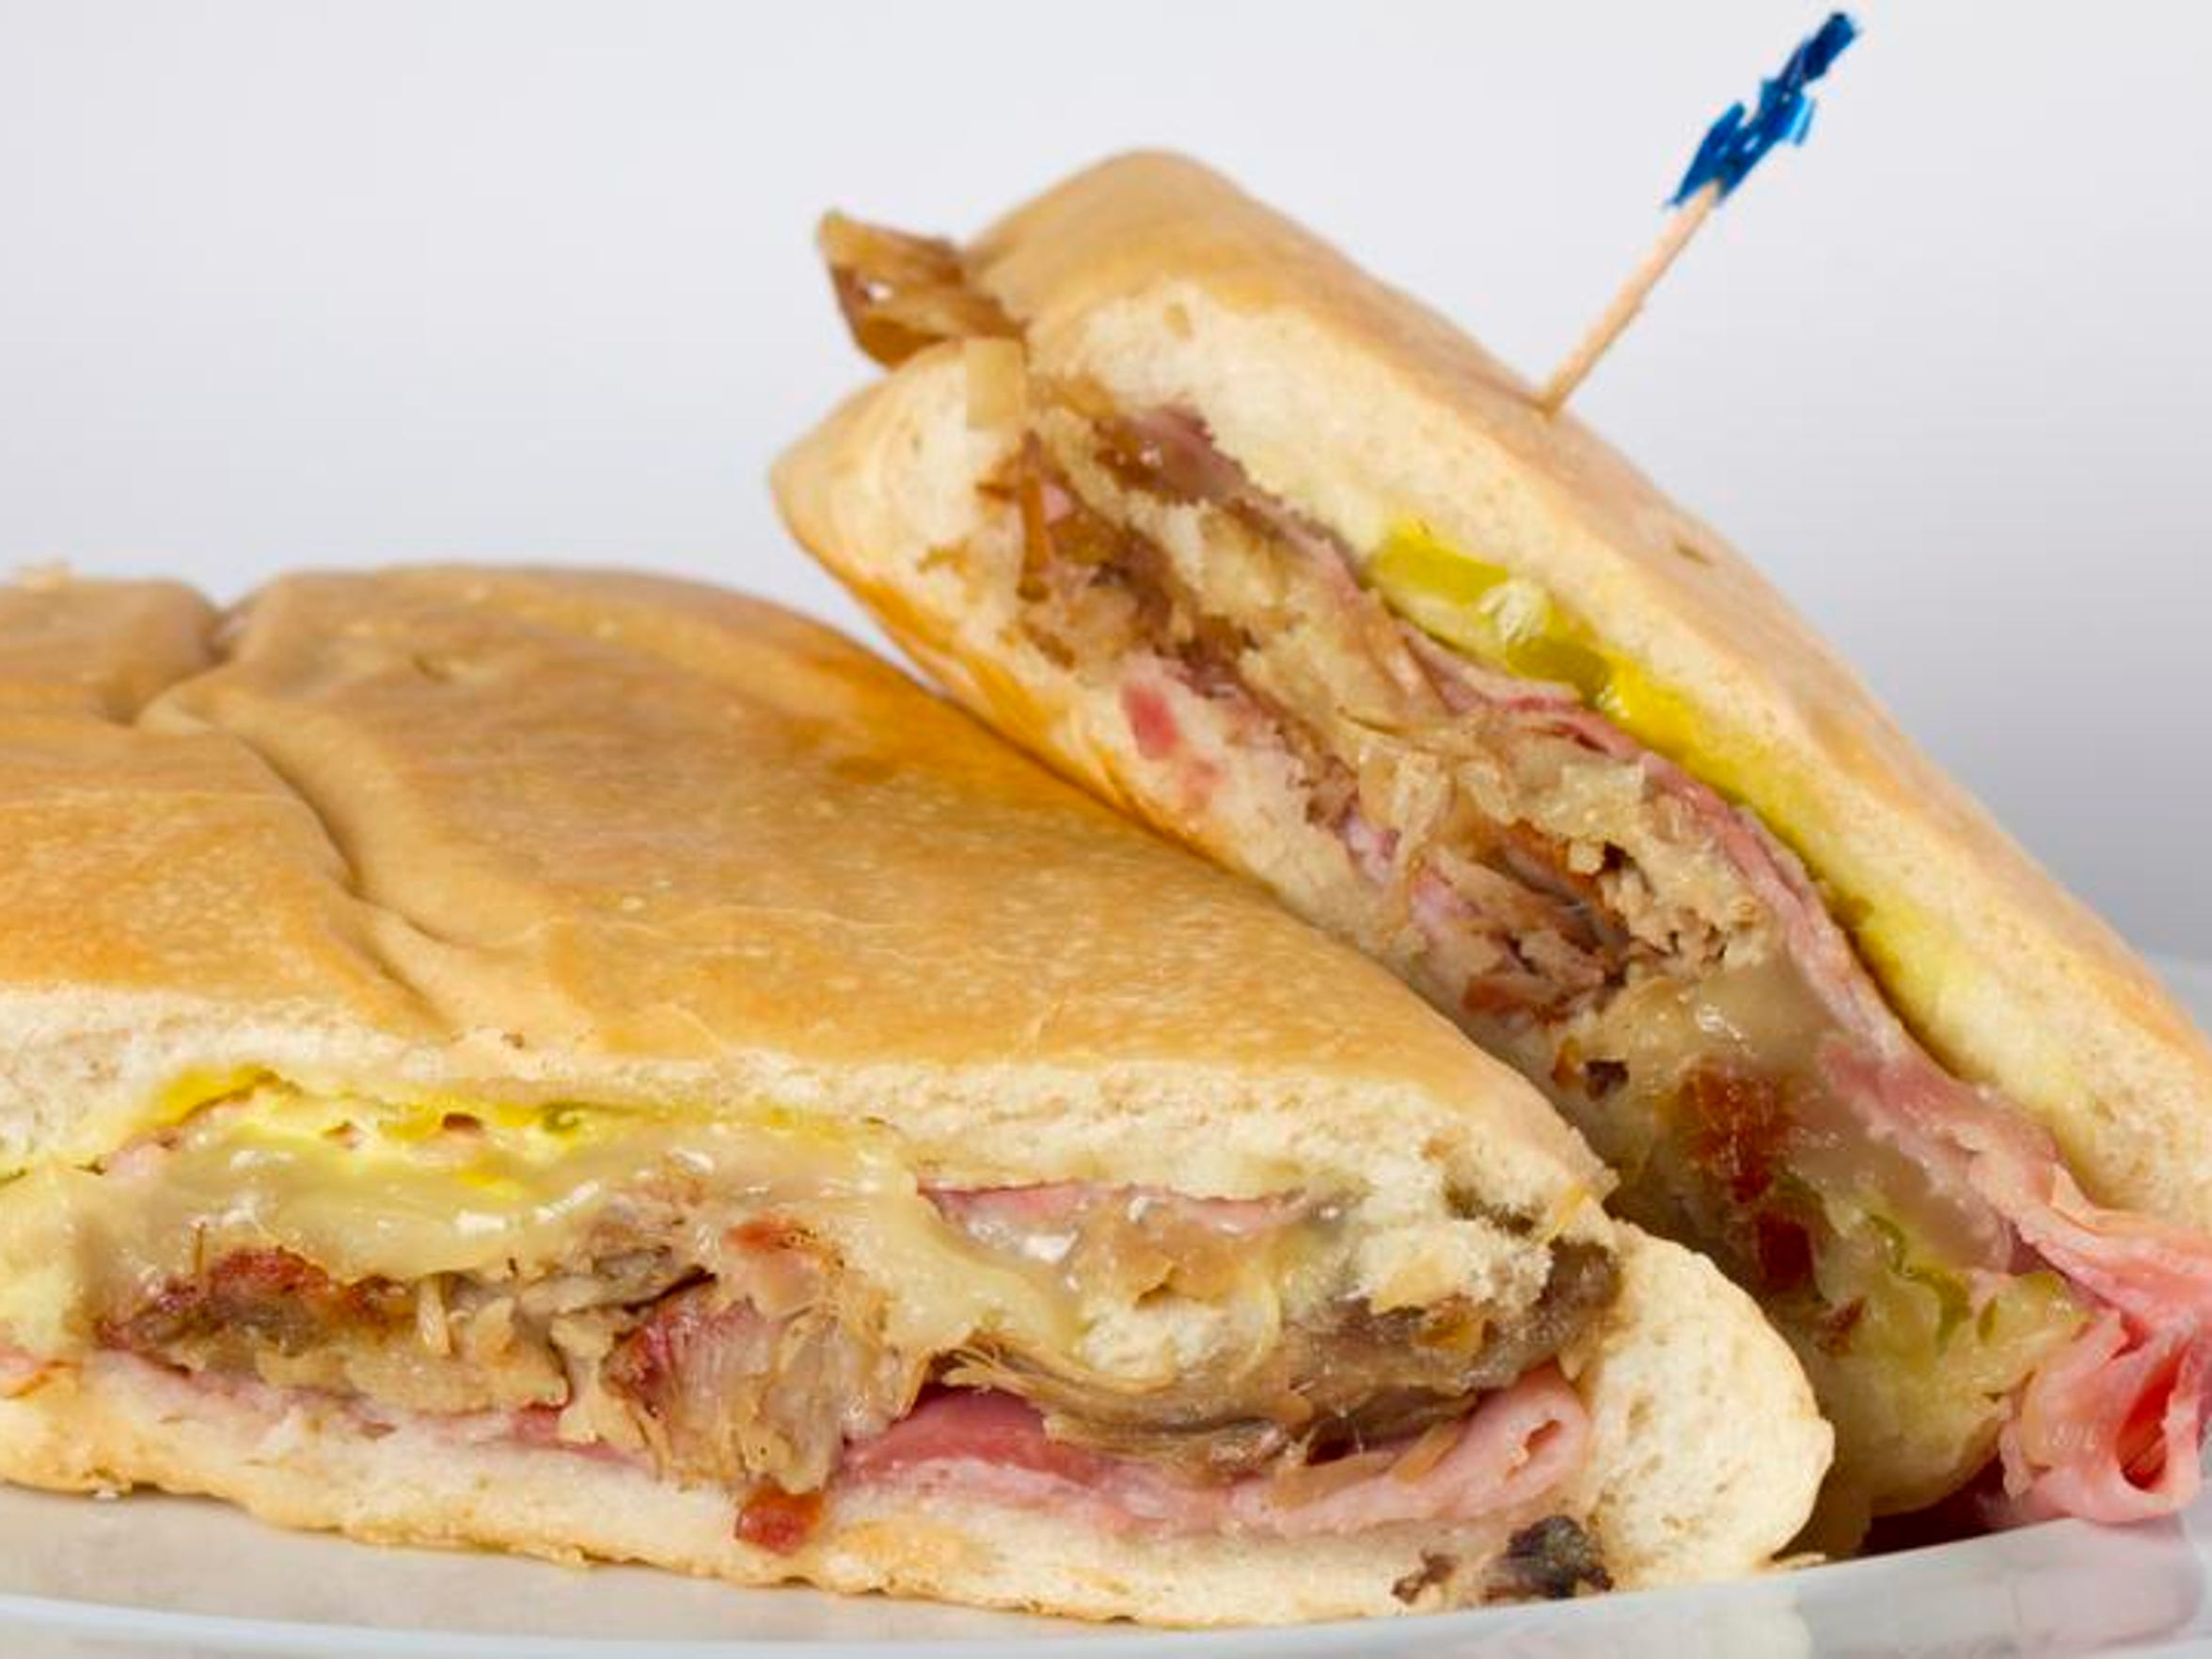 The Cuban sandwich from Casa Rojas in Cape Coral was